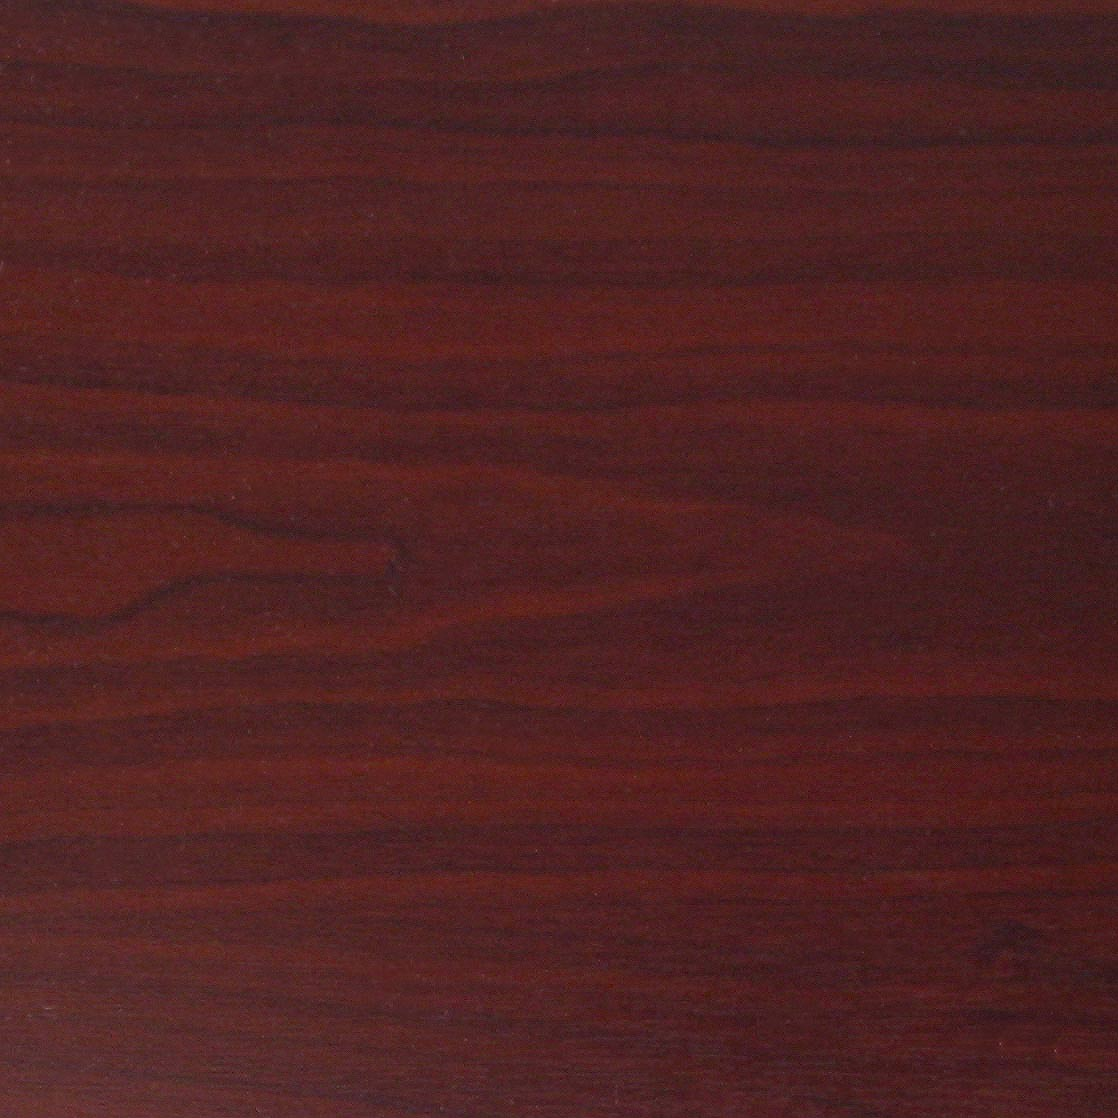 Rosewood (Wood Grain)